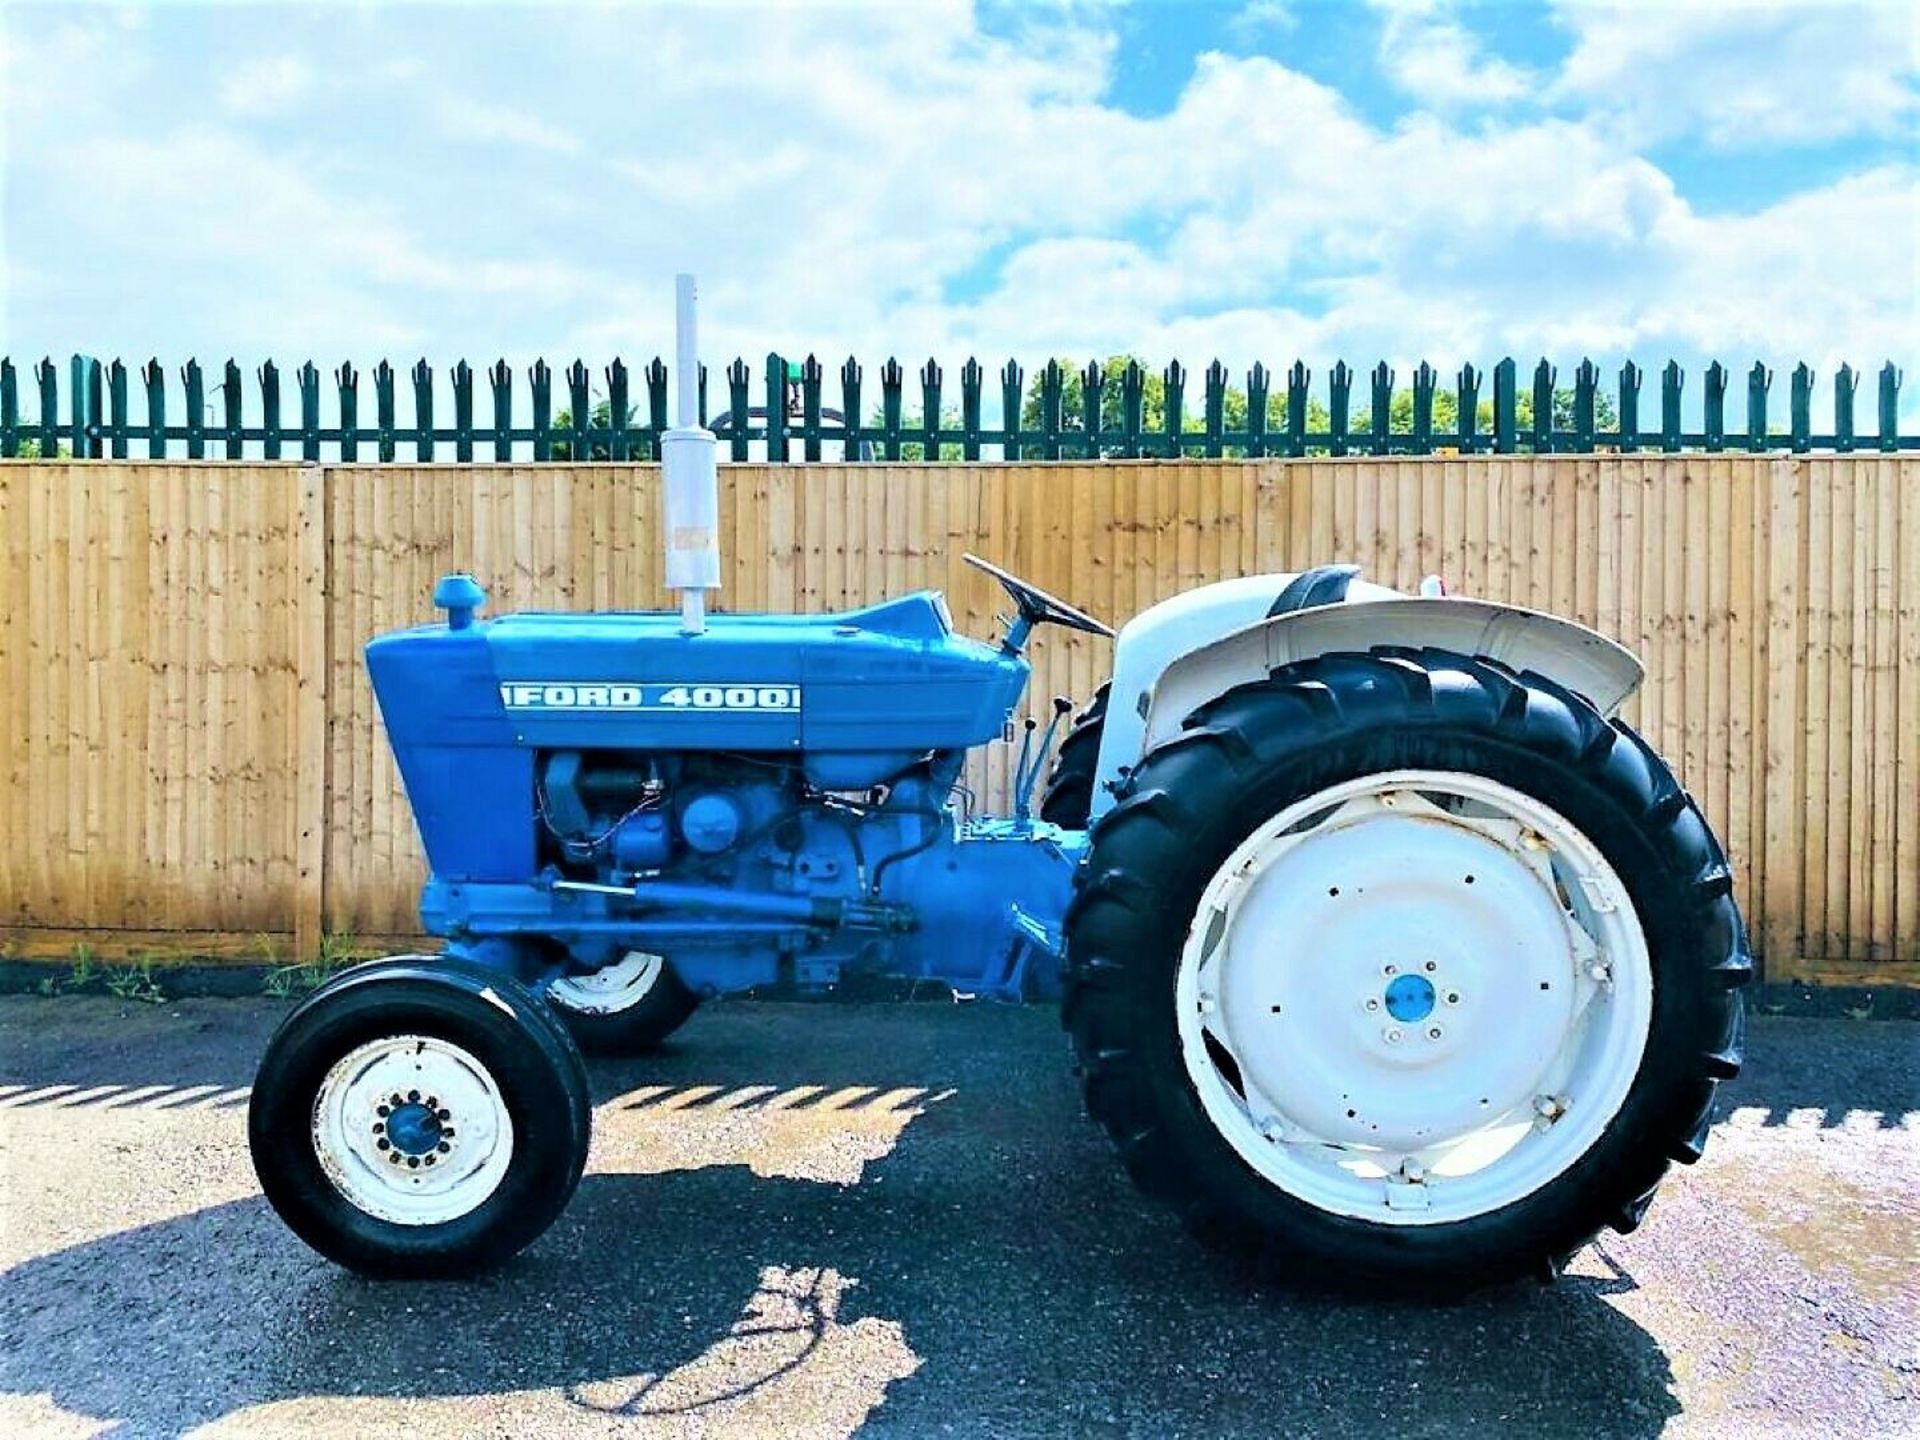 Ford 4000 Tractor 1969 - Image 2 of 12